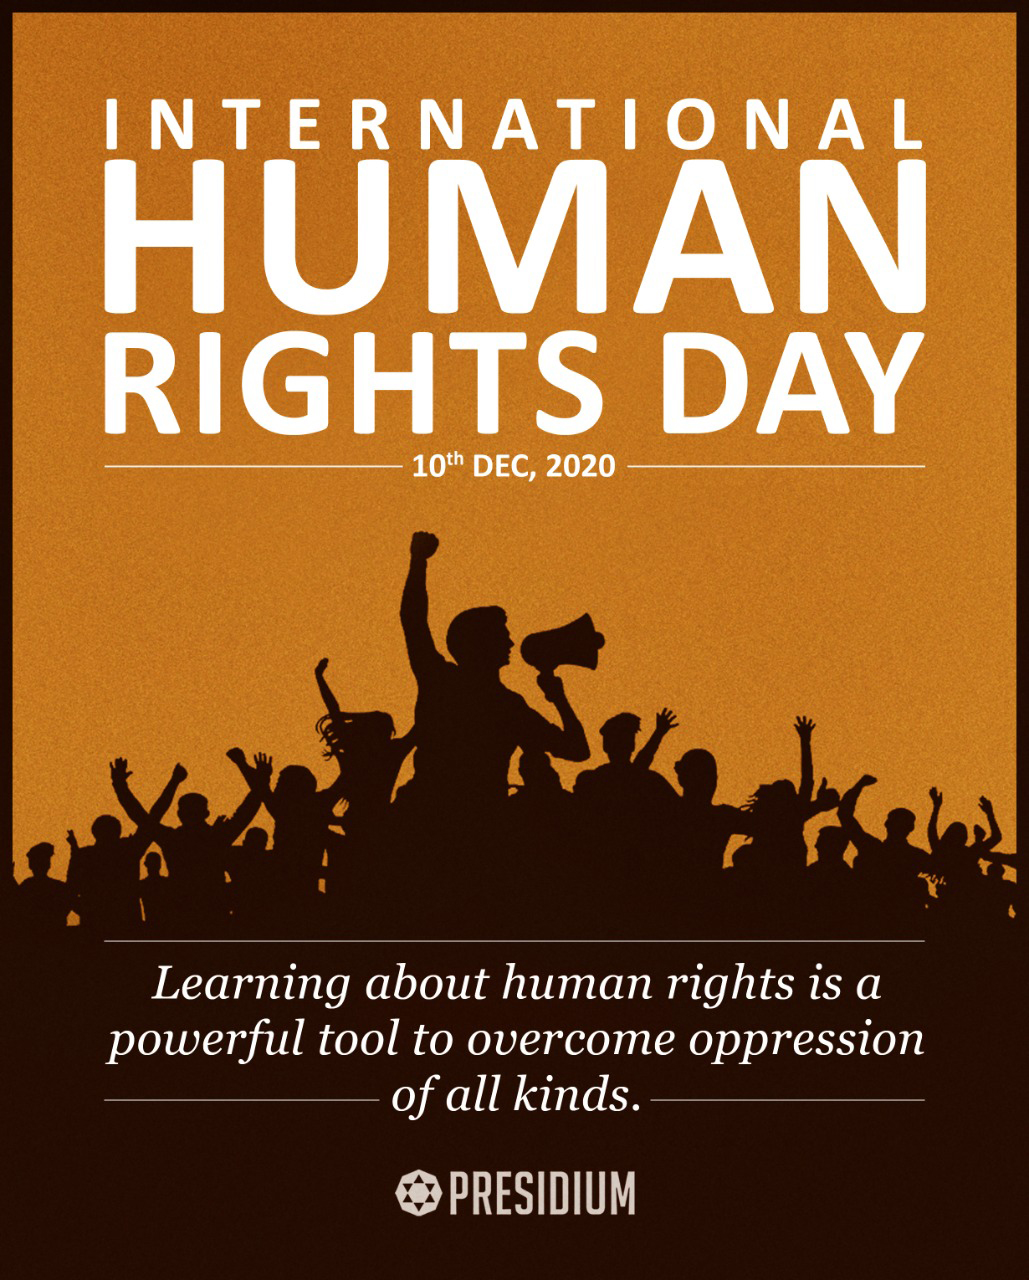 LET'S SPREAD THE IDEALS OF HUMANITY ON WORLD HUMAN RIGHTS DAY